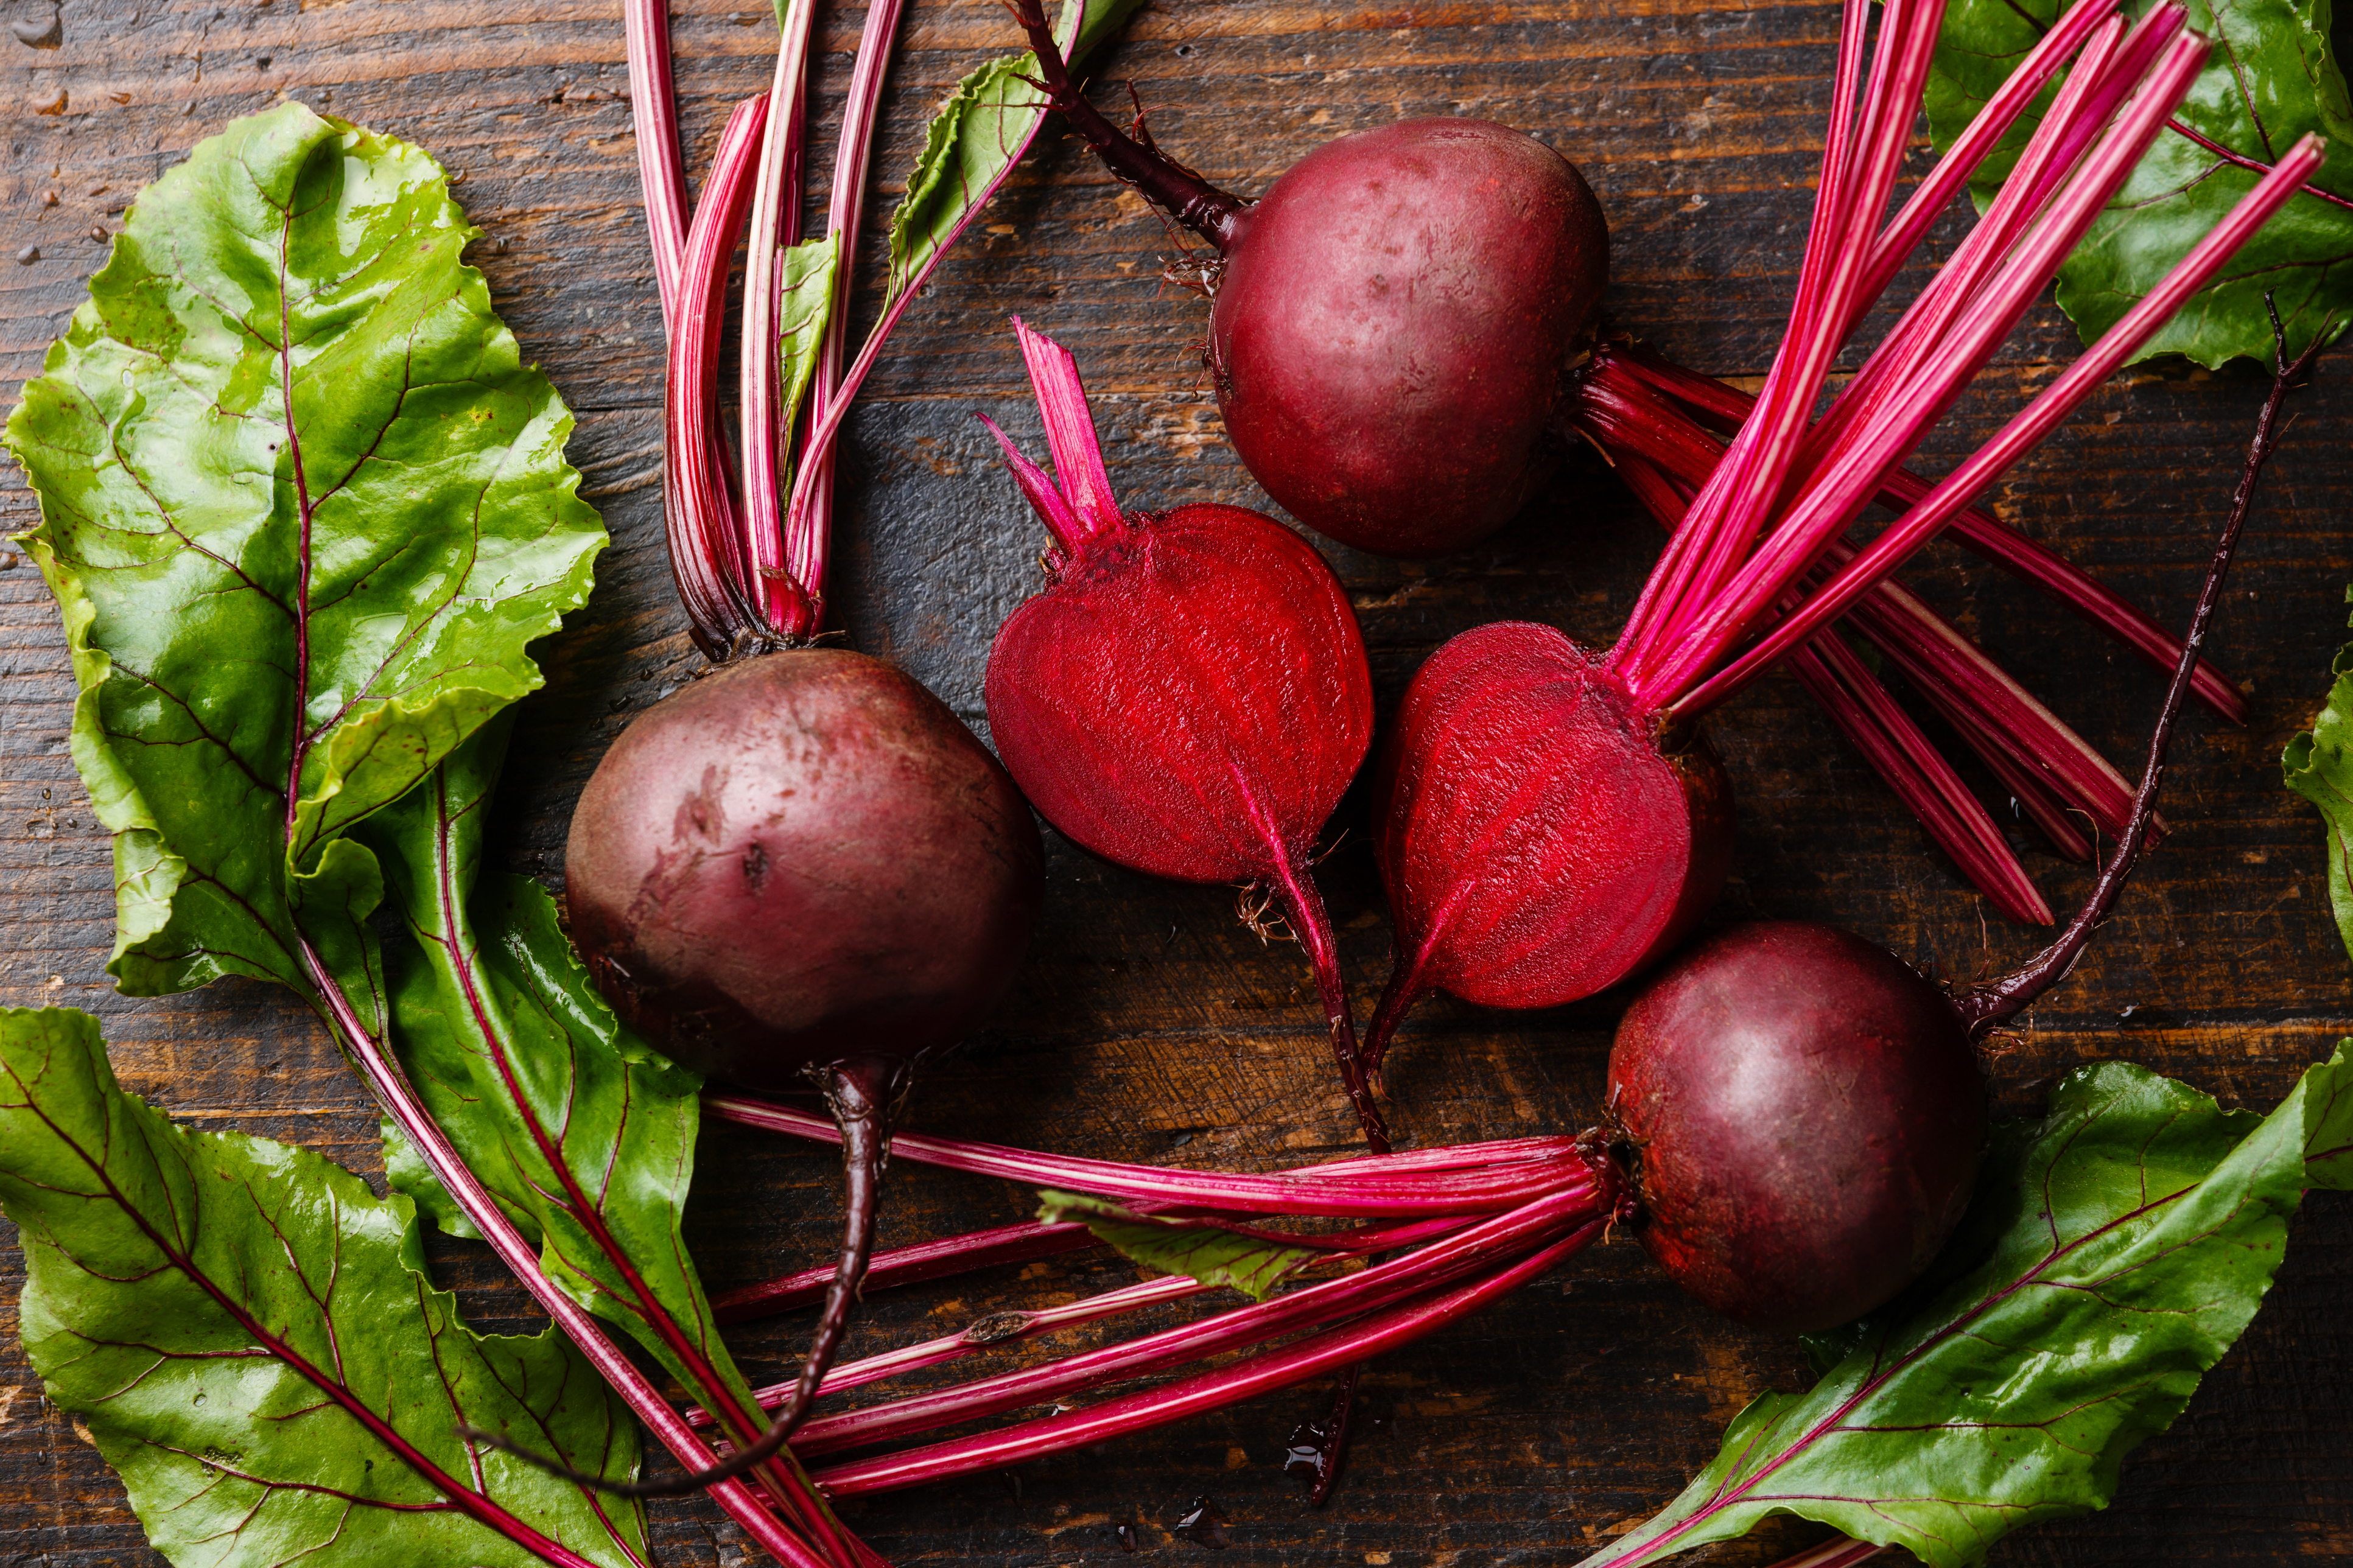 Beetroot: The perfect partner to salad cress